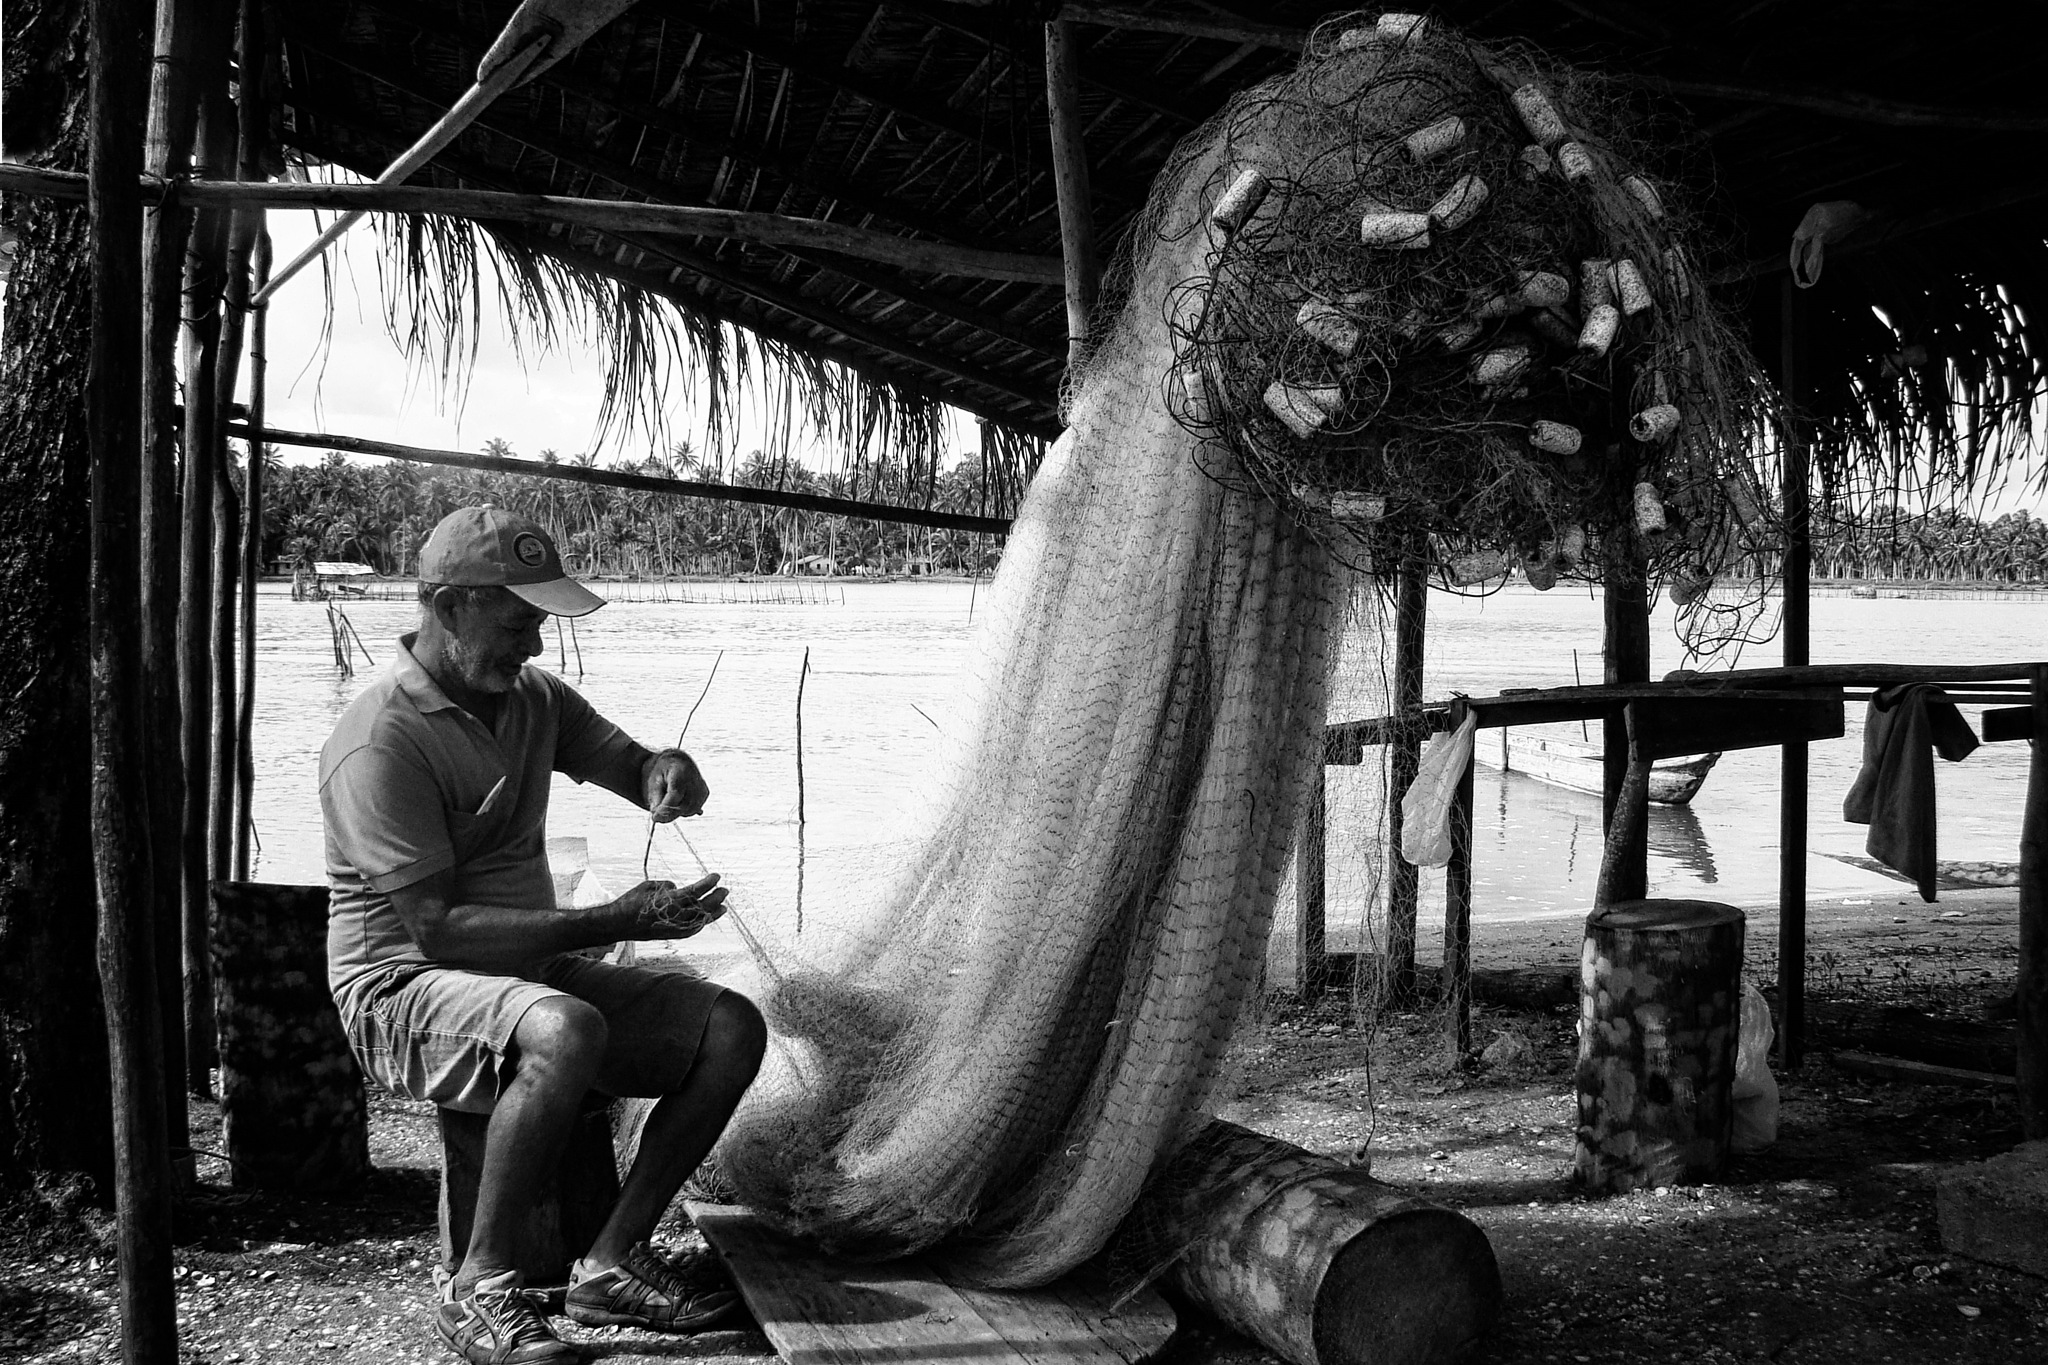 Fisherman repairing the net by Fred Matos